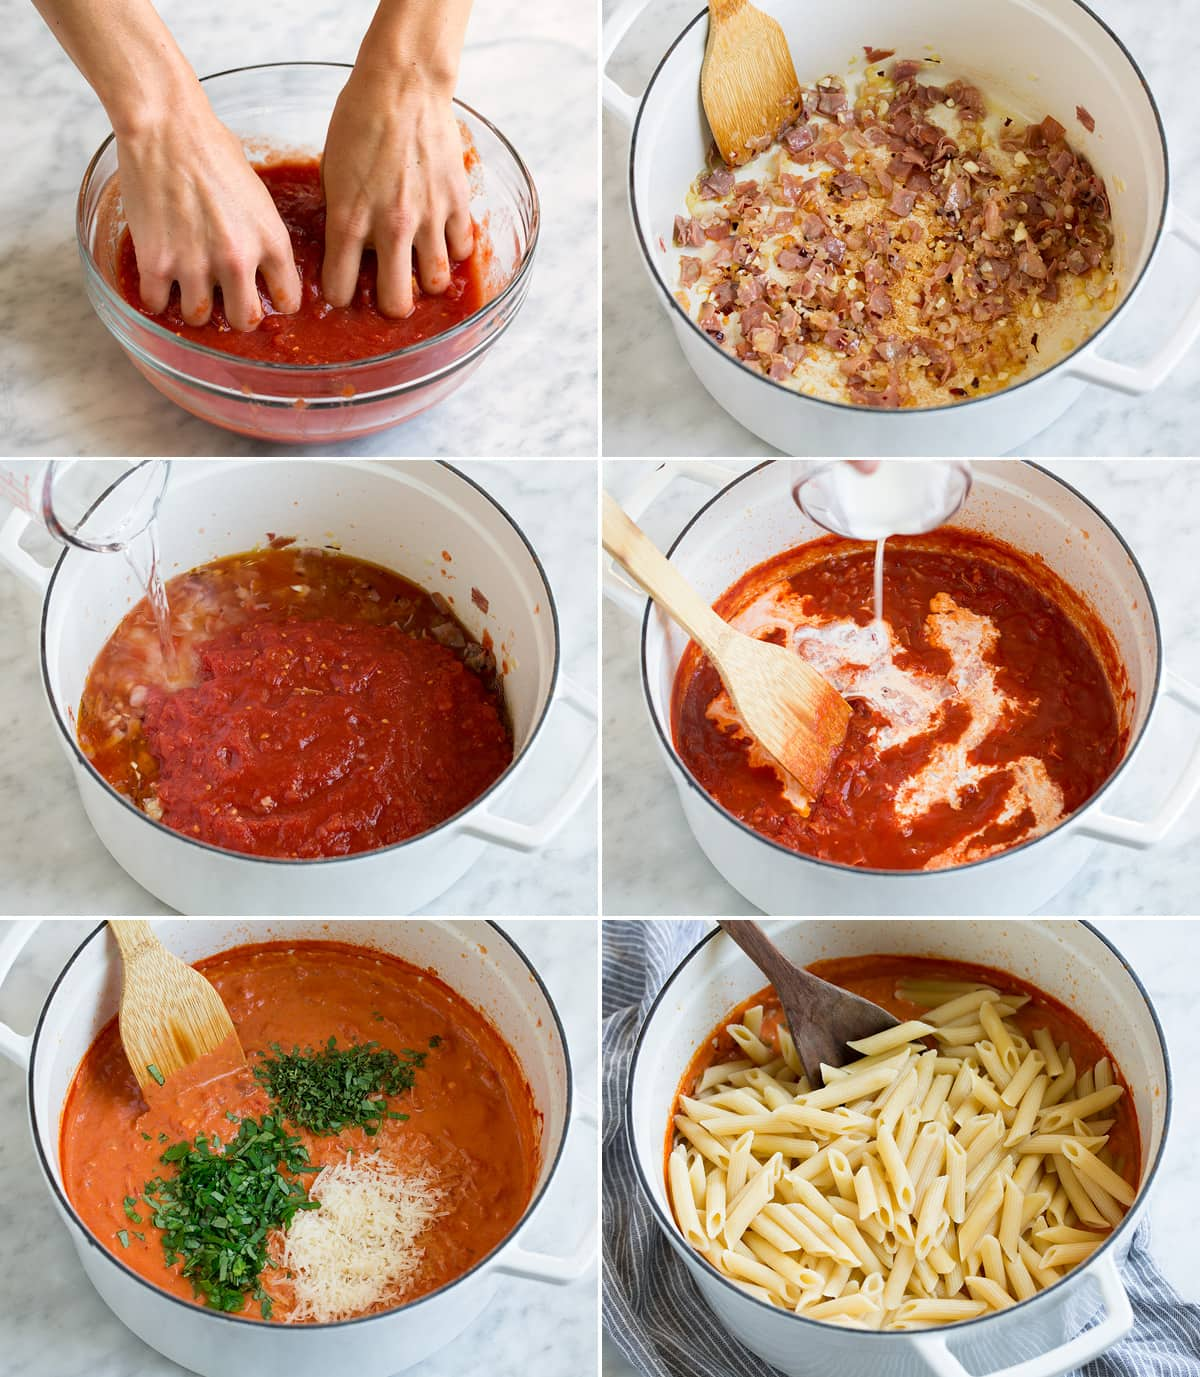 Steps showing how to make vodka sauce and tossing with penne pasta at the end.